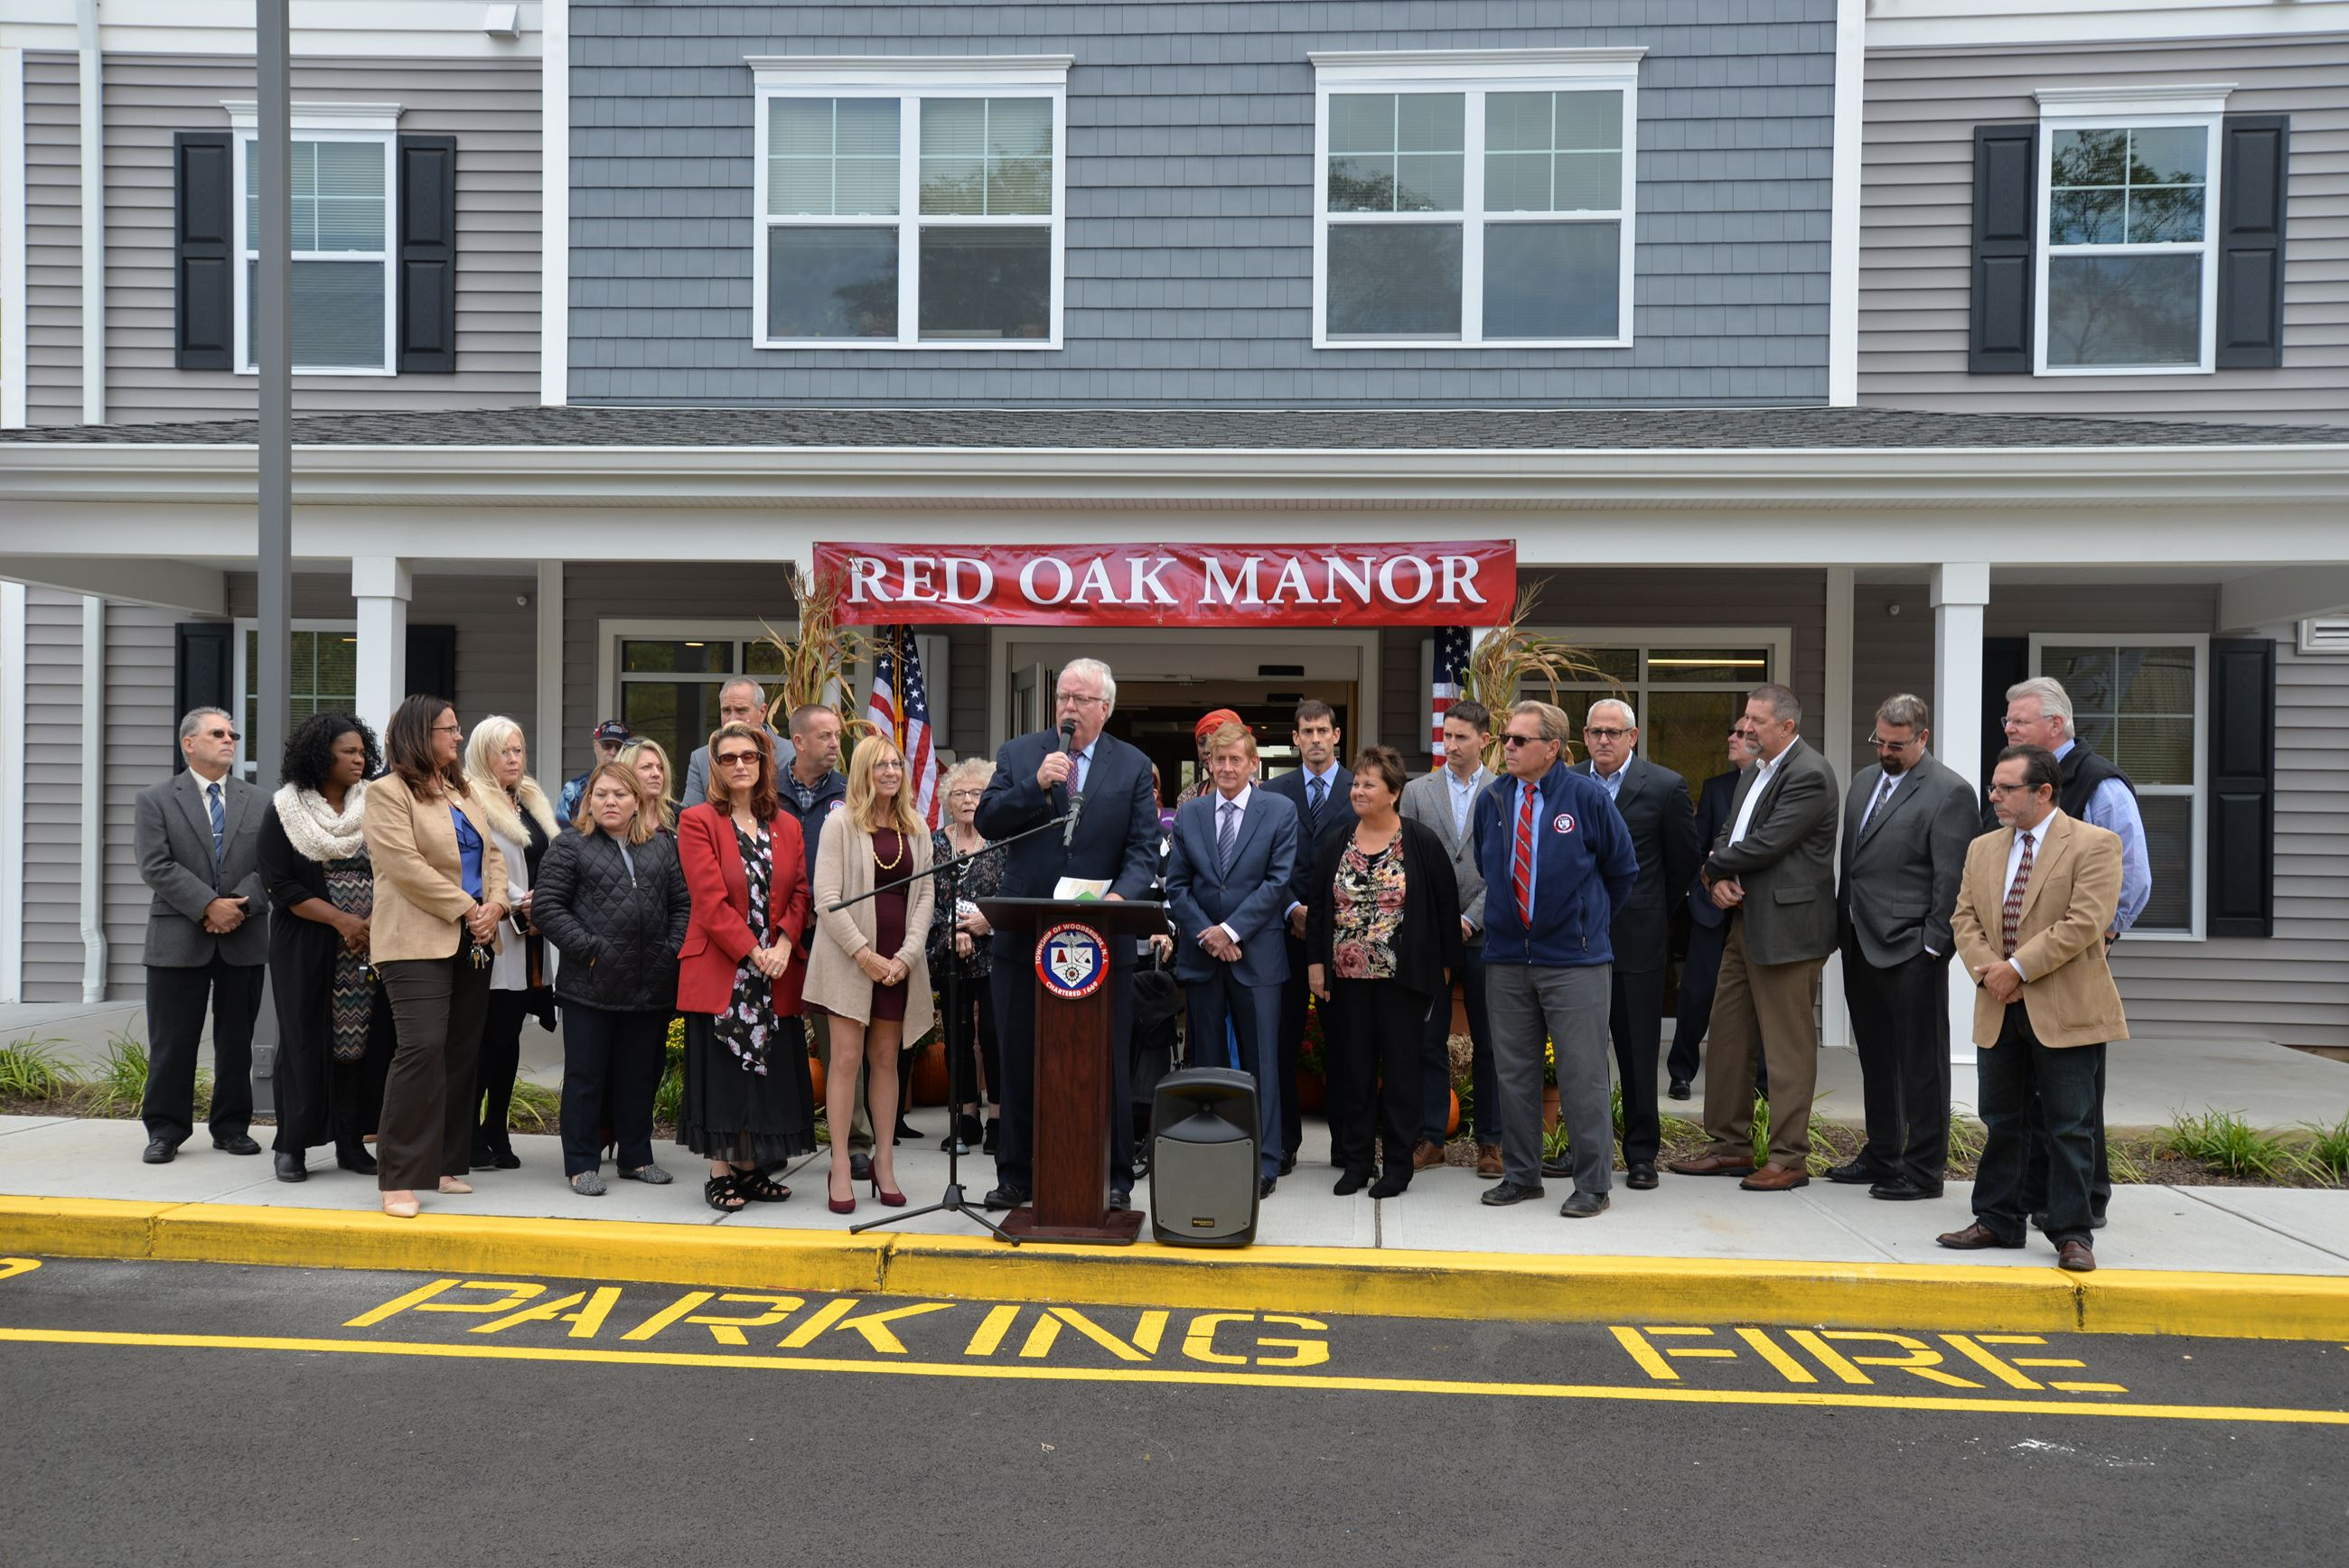 Red Oak Manor_Mayor_Group - 10-10-19